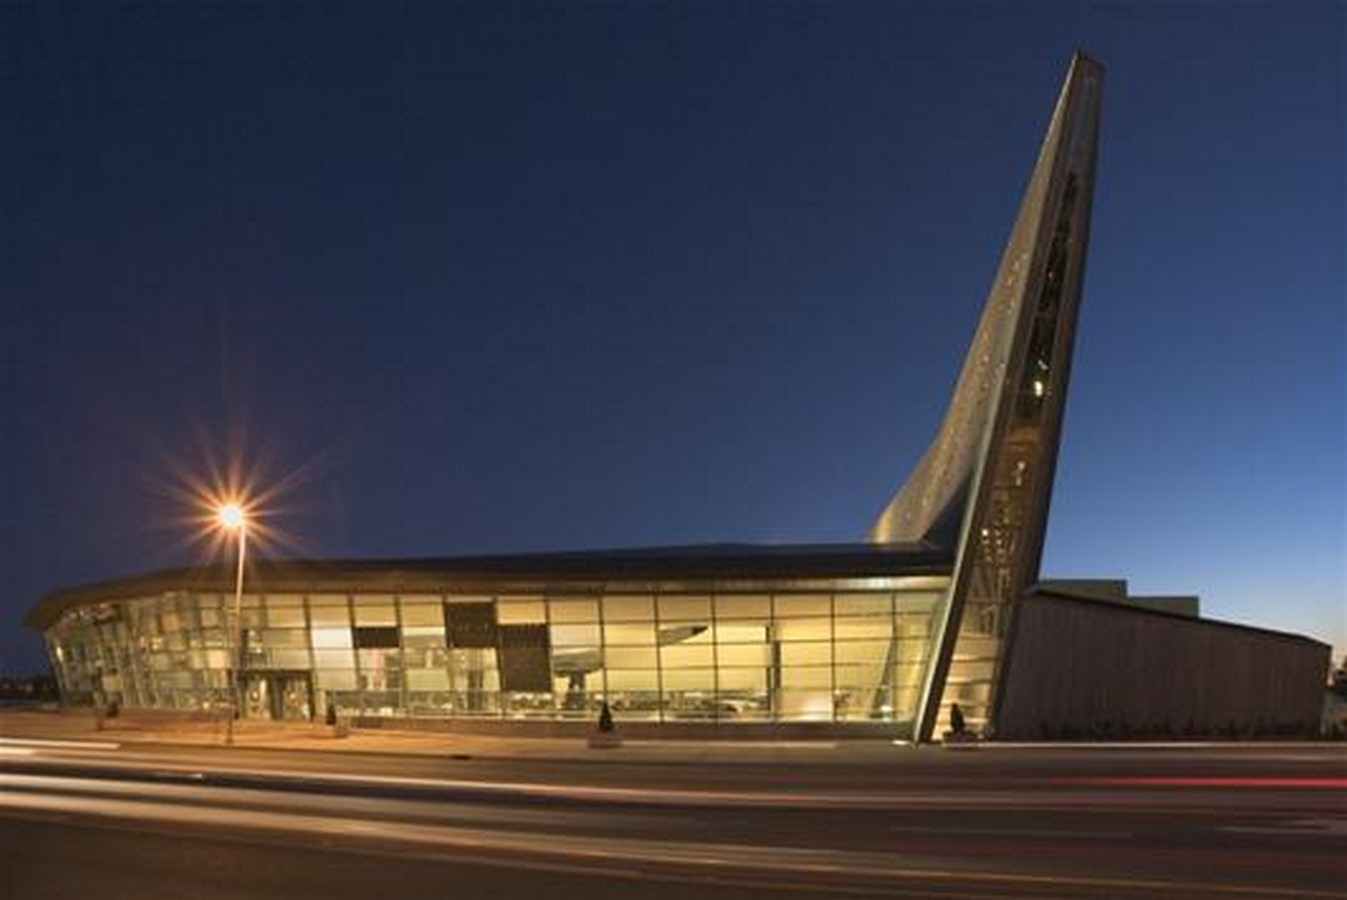 Places to visit in Ottawa for the Travelling Architect - Sheet10